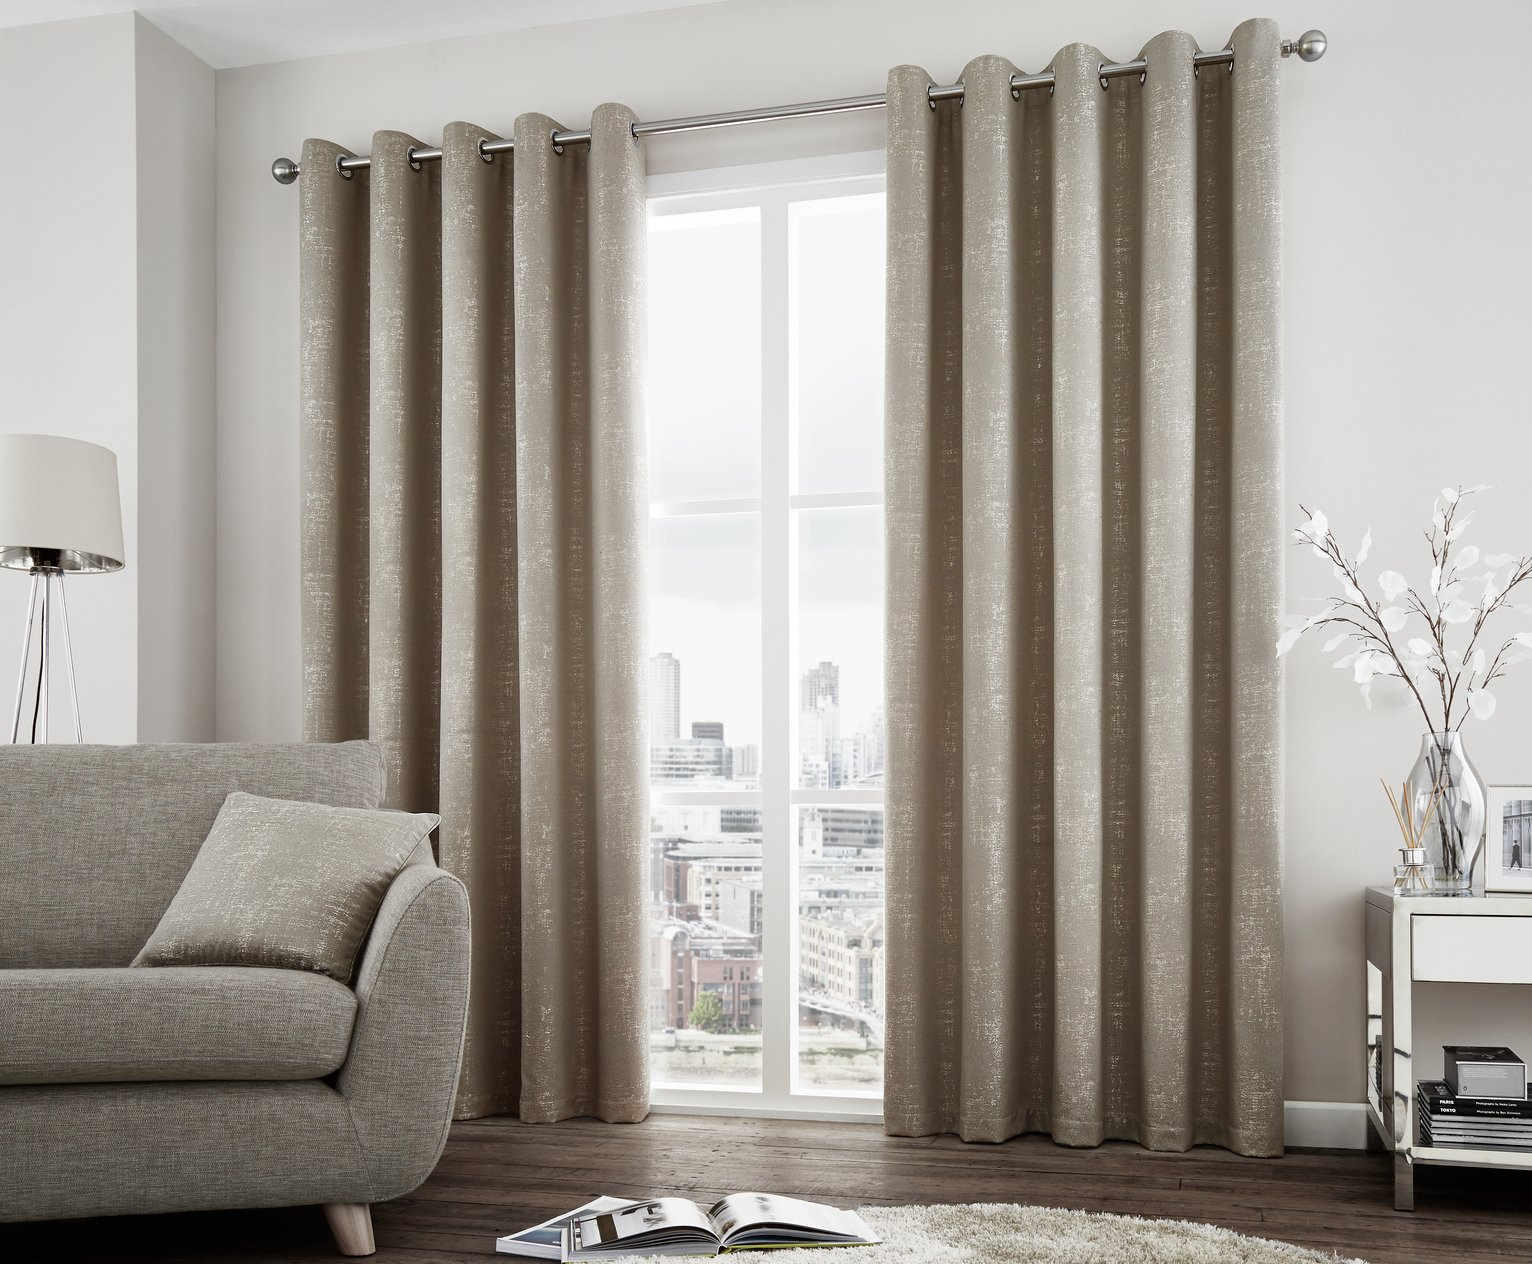 Curtina Solent Eyelet Curtains - 229x229cm - Stone